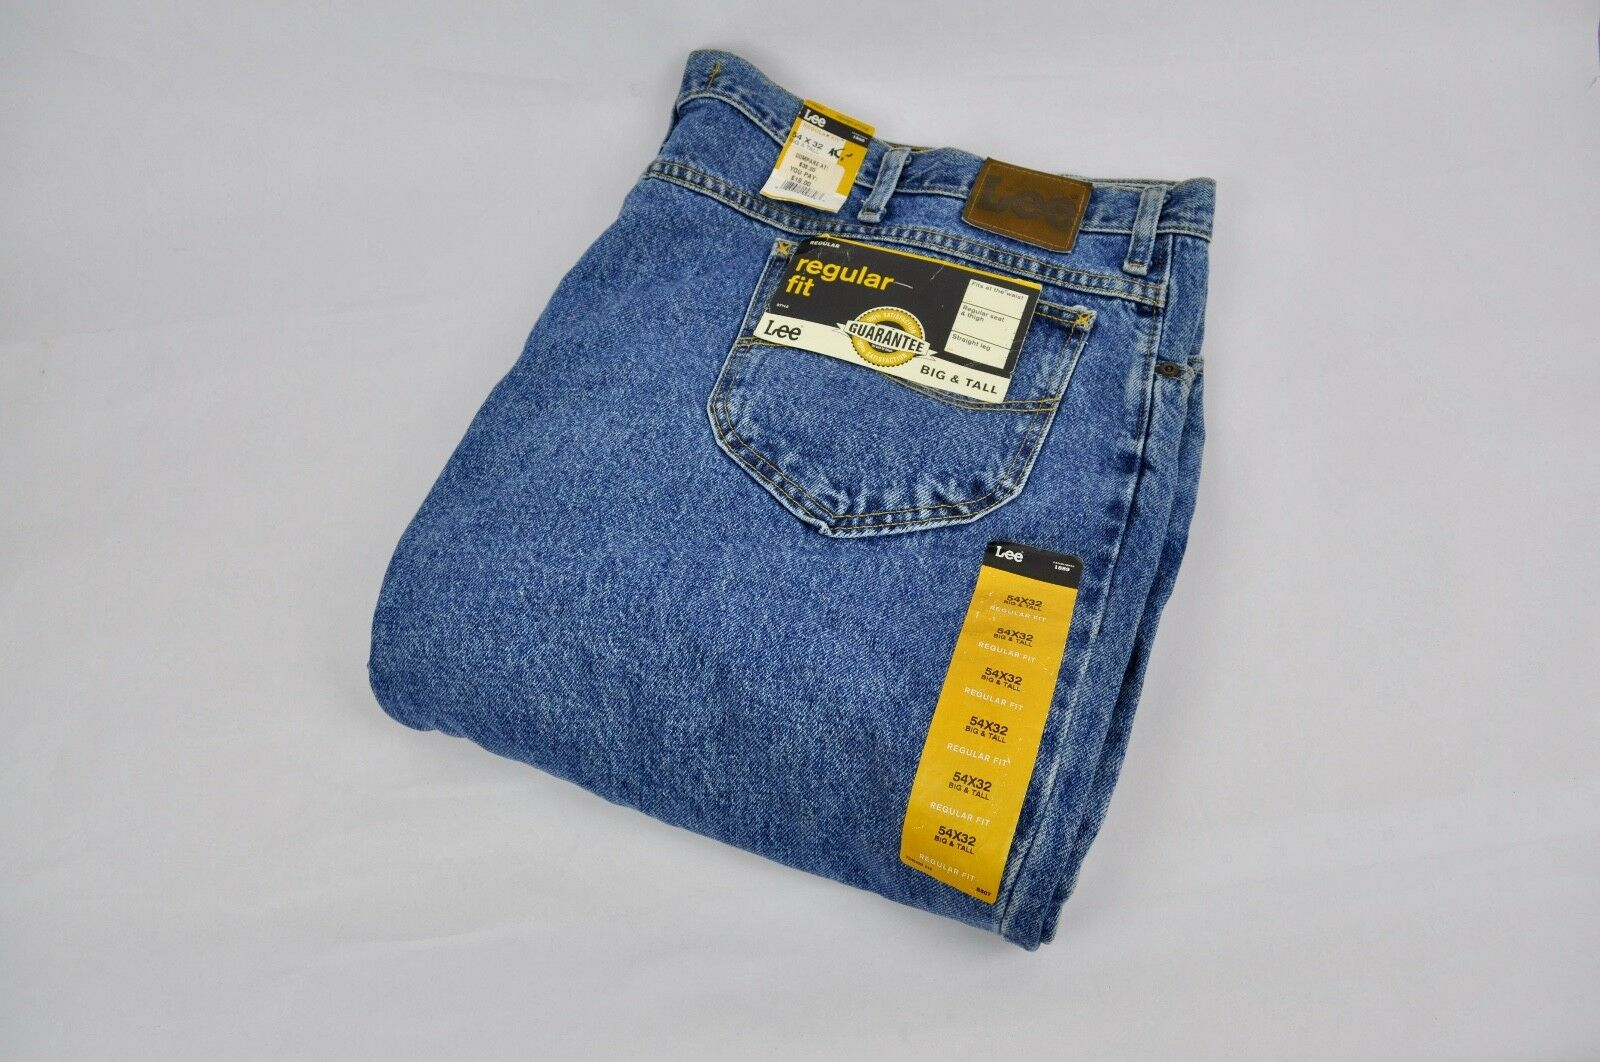 LEE Regular Fit Jeans Big&Tall W54 L32 Denim Stonewashe Straight Leg Peper Stone